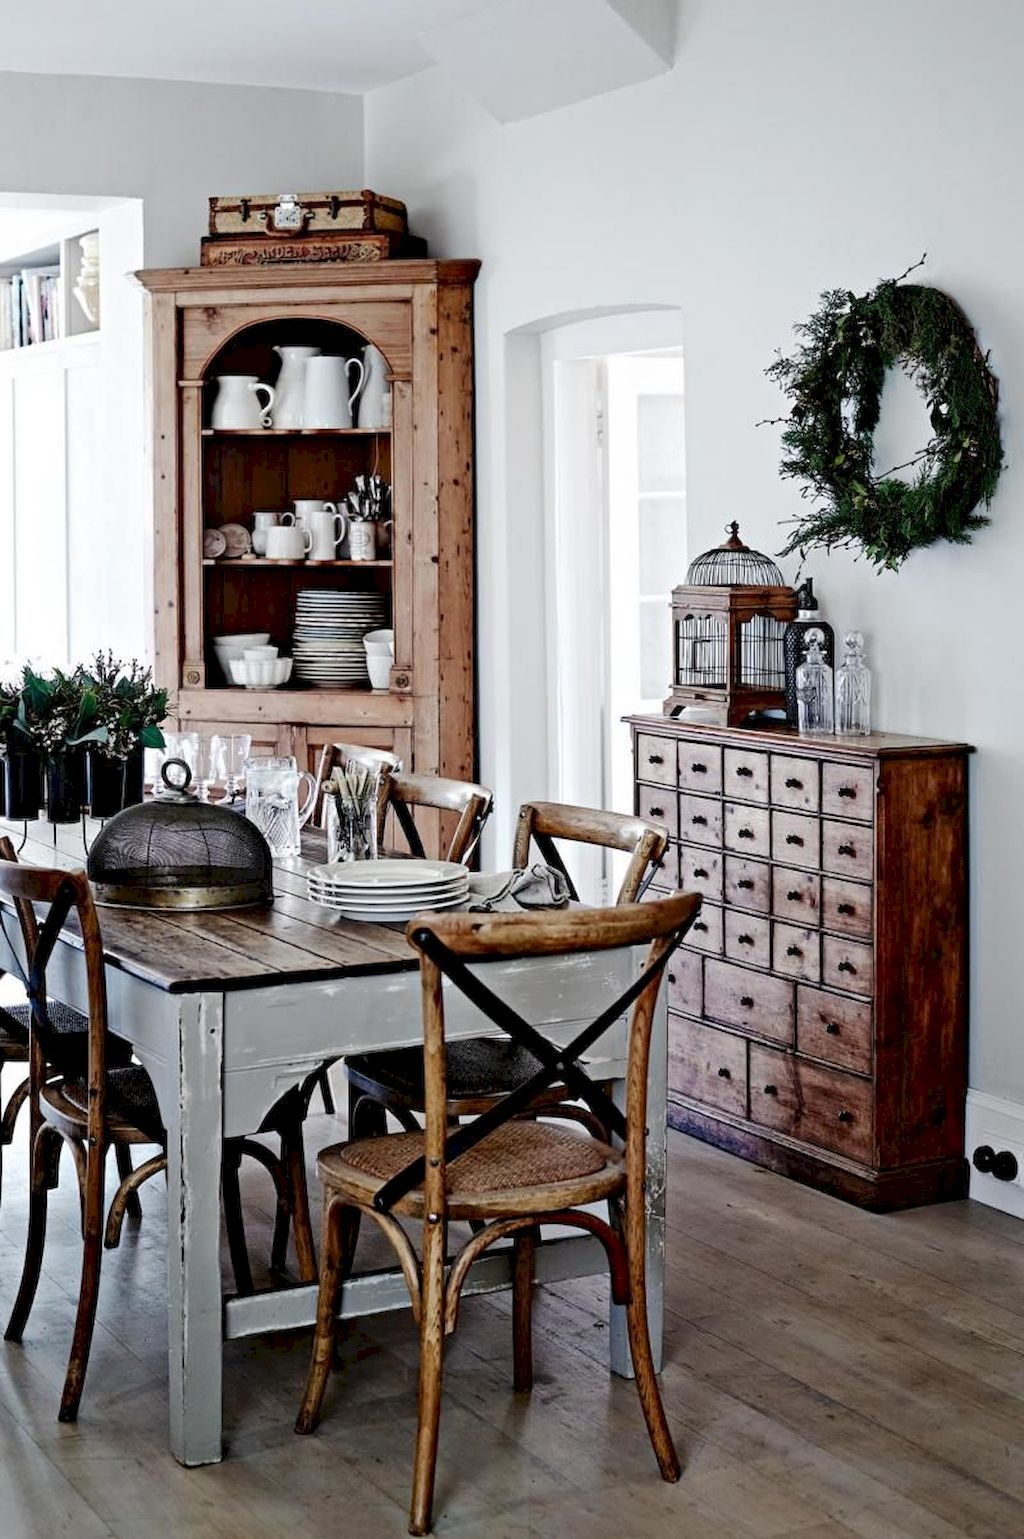 60 Dining Table Inspirations For Diy Farmhouse Concept Elonahome Com Farmhouse Dining Room Farmhouse Dining Rooms Decor Rustic Dining Room